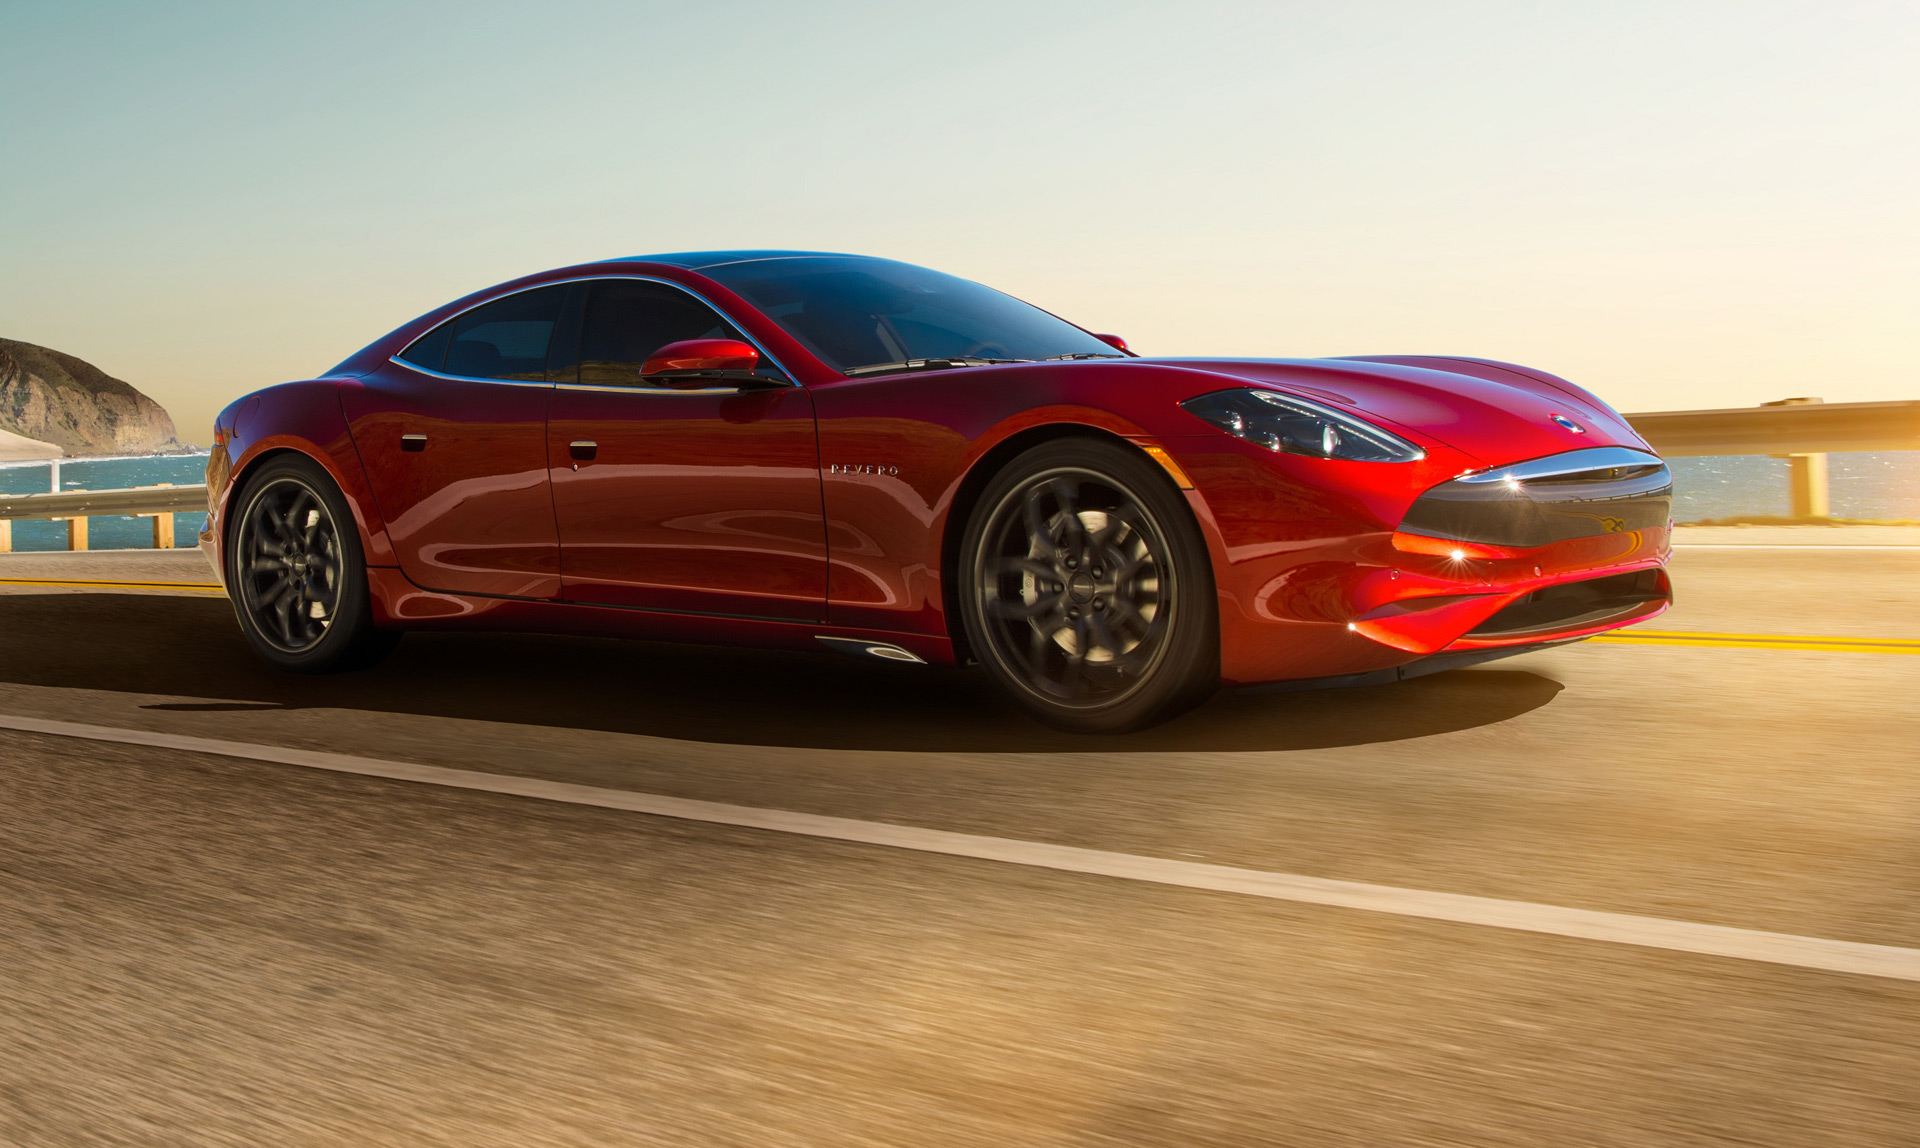 2020 Karma Revero Gt Receives Performance Packs 144 800 Price Tag